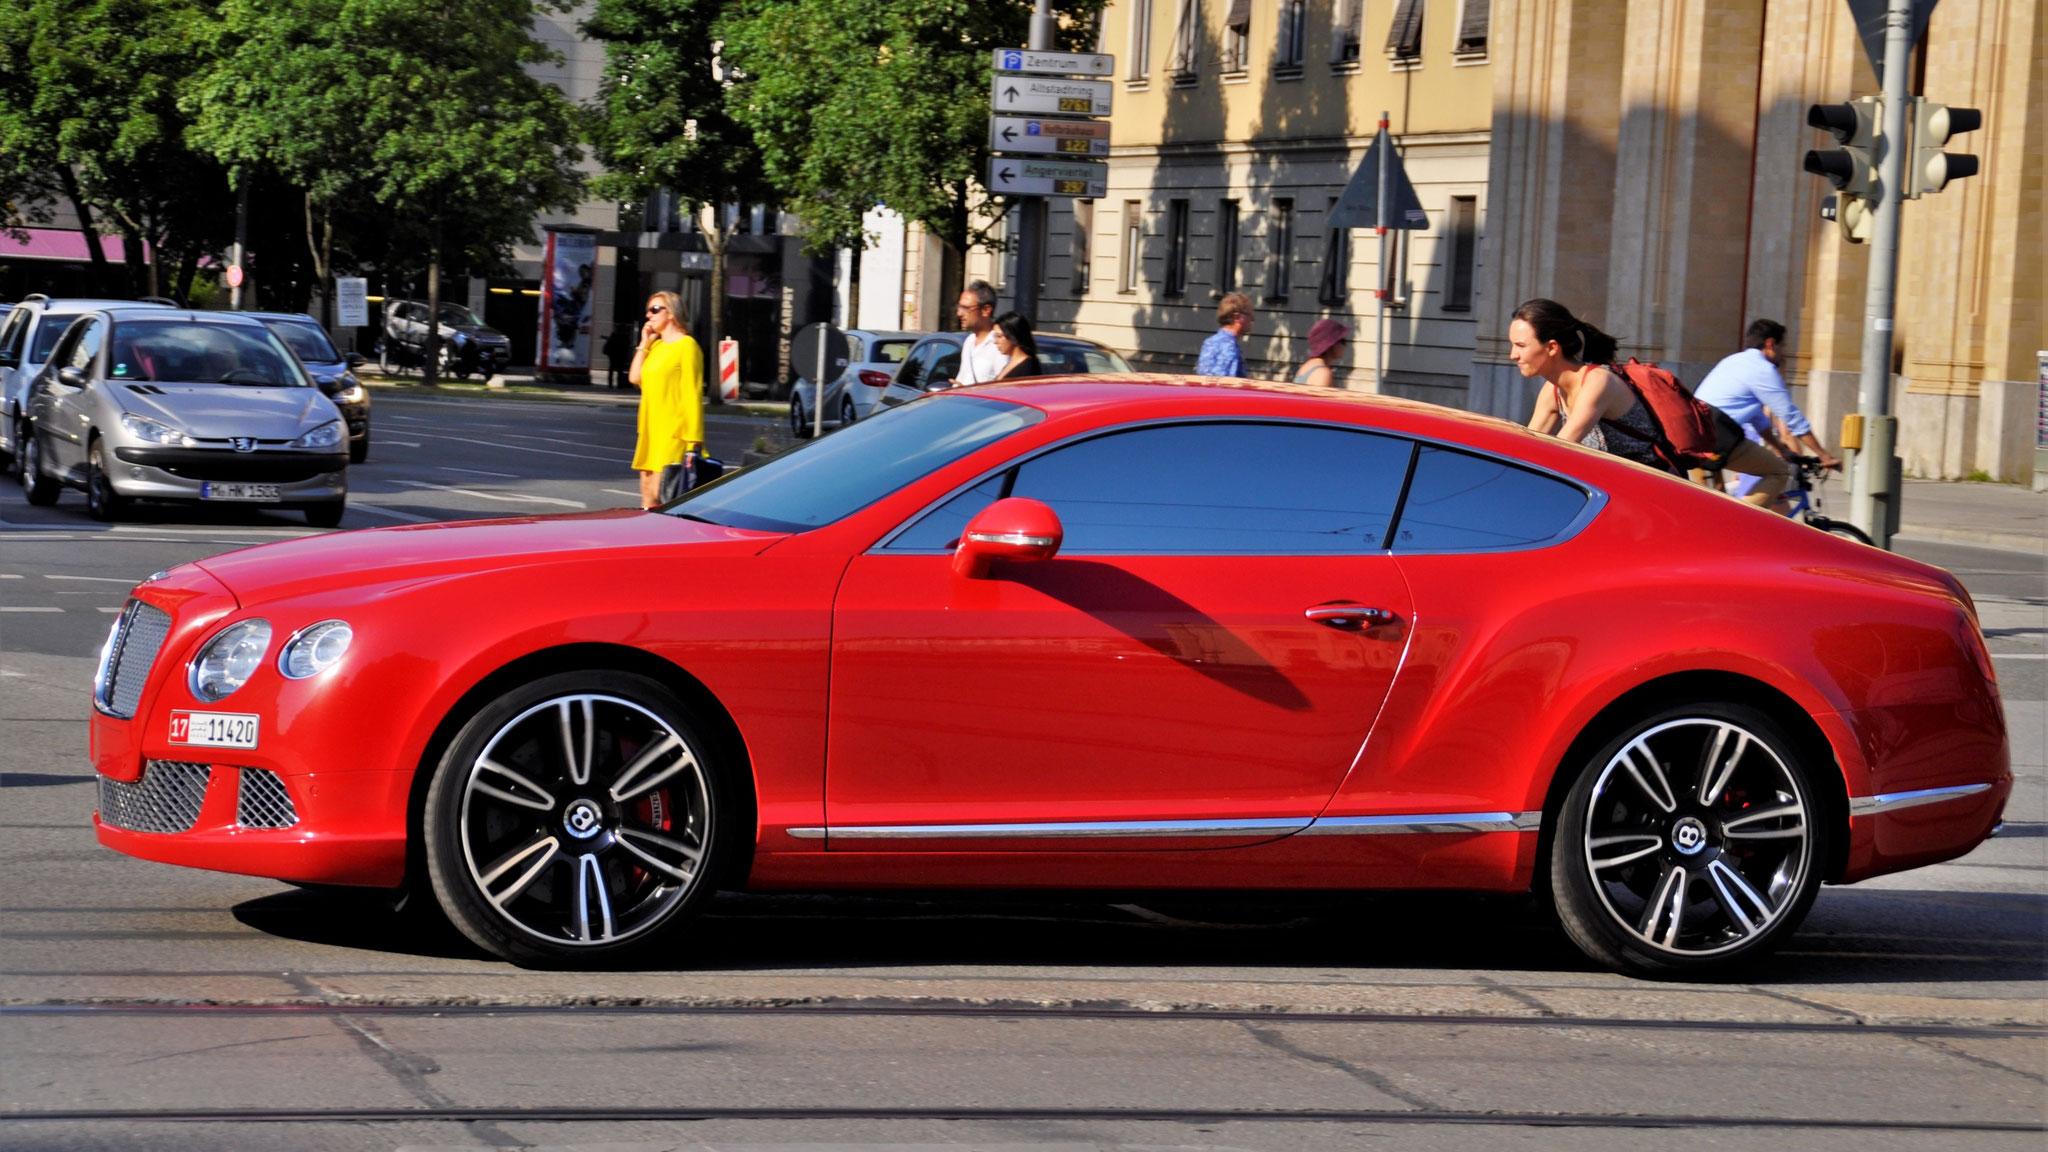 Bentley Continental GT - 17-11420 (UAEAD)